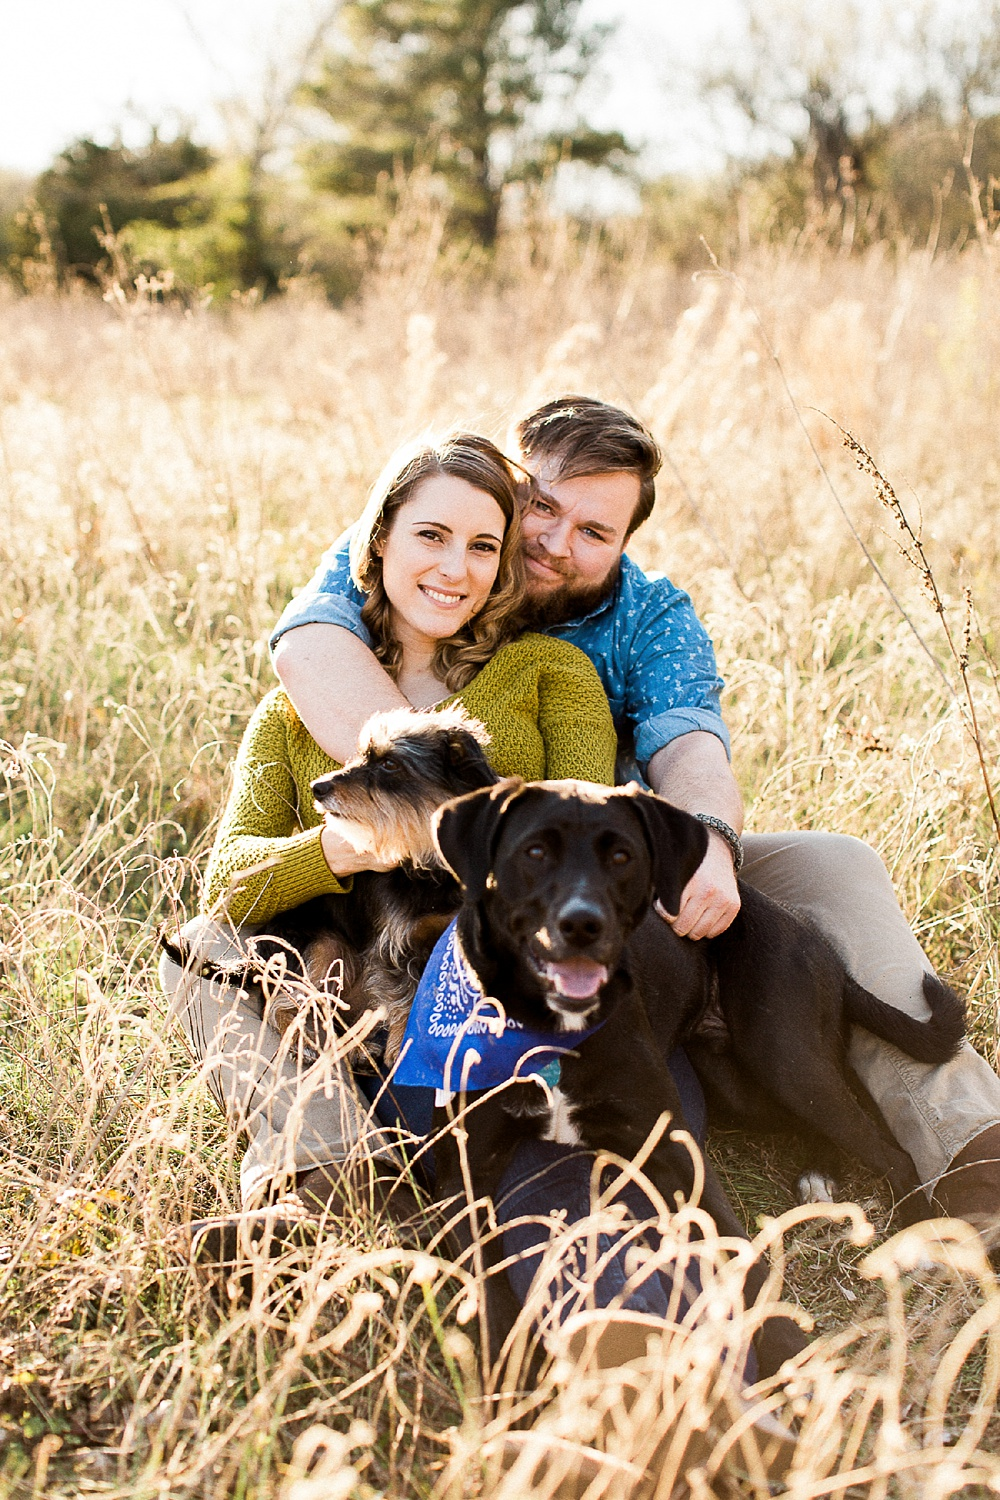 couple snuggles with their dogs in a sunlight grassy meadow